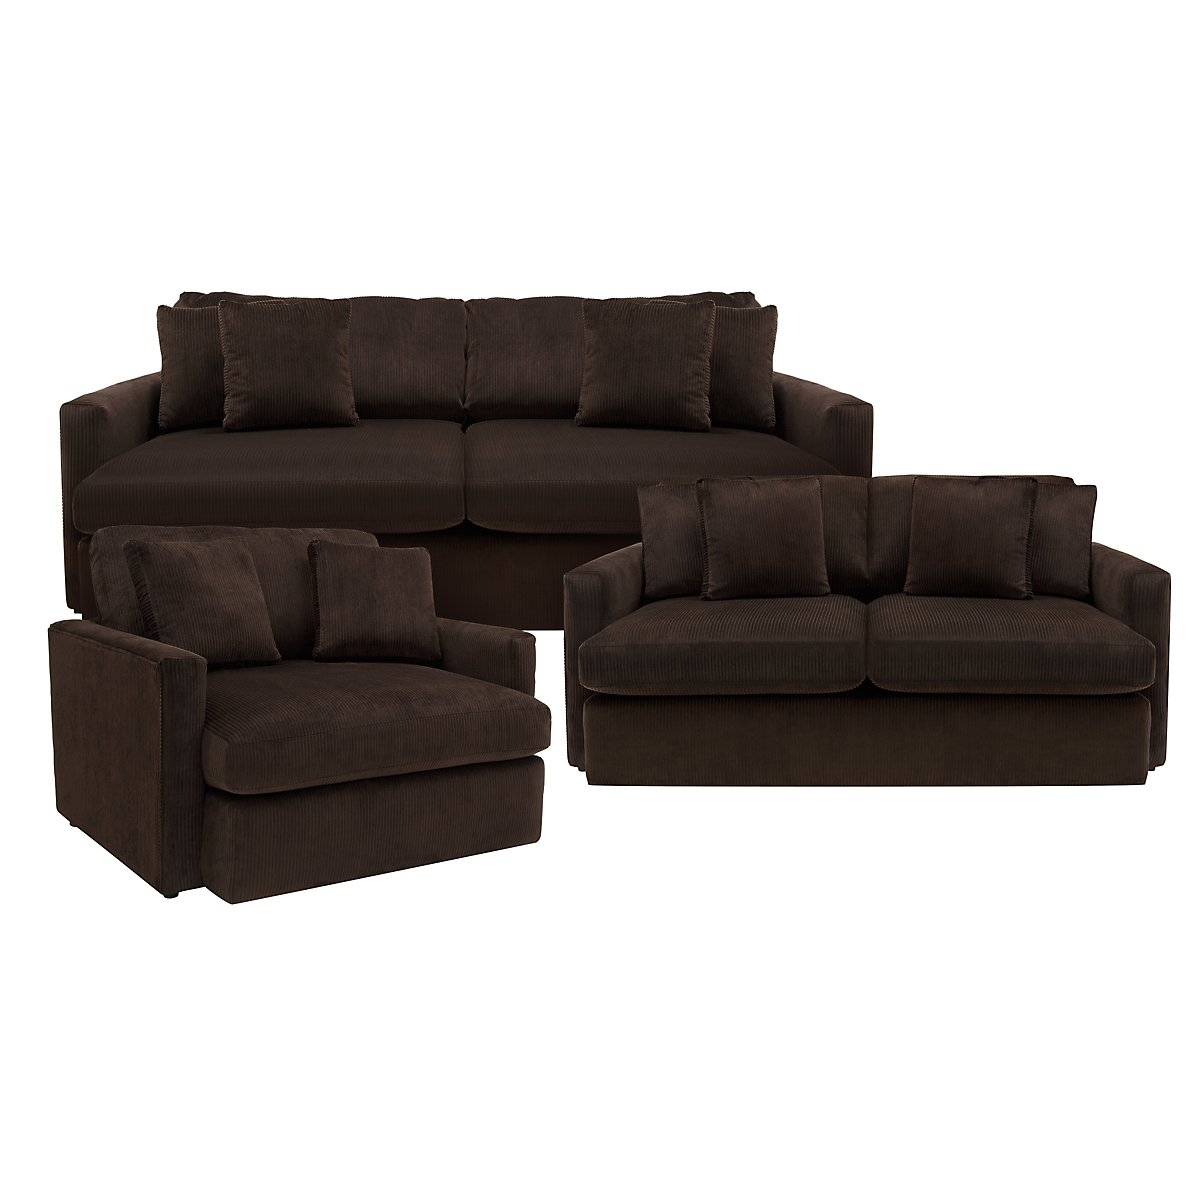 Dark Brown Microfiber Sofa Glasgow Dark Brown Elephant